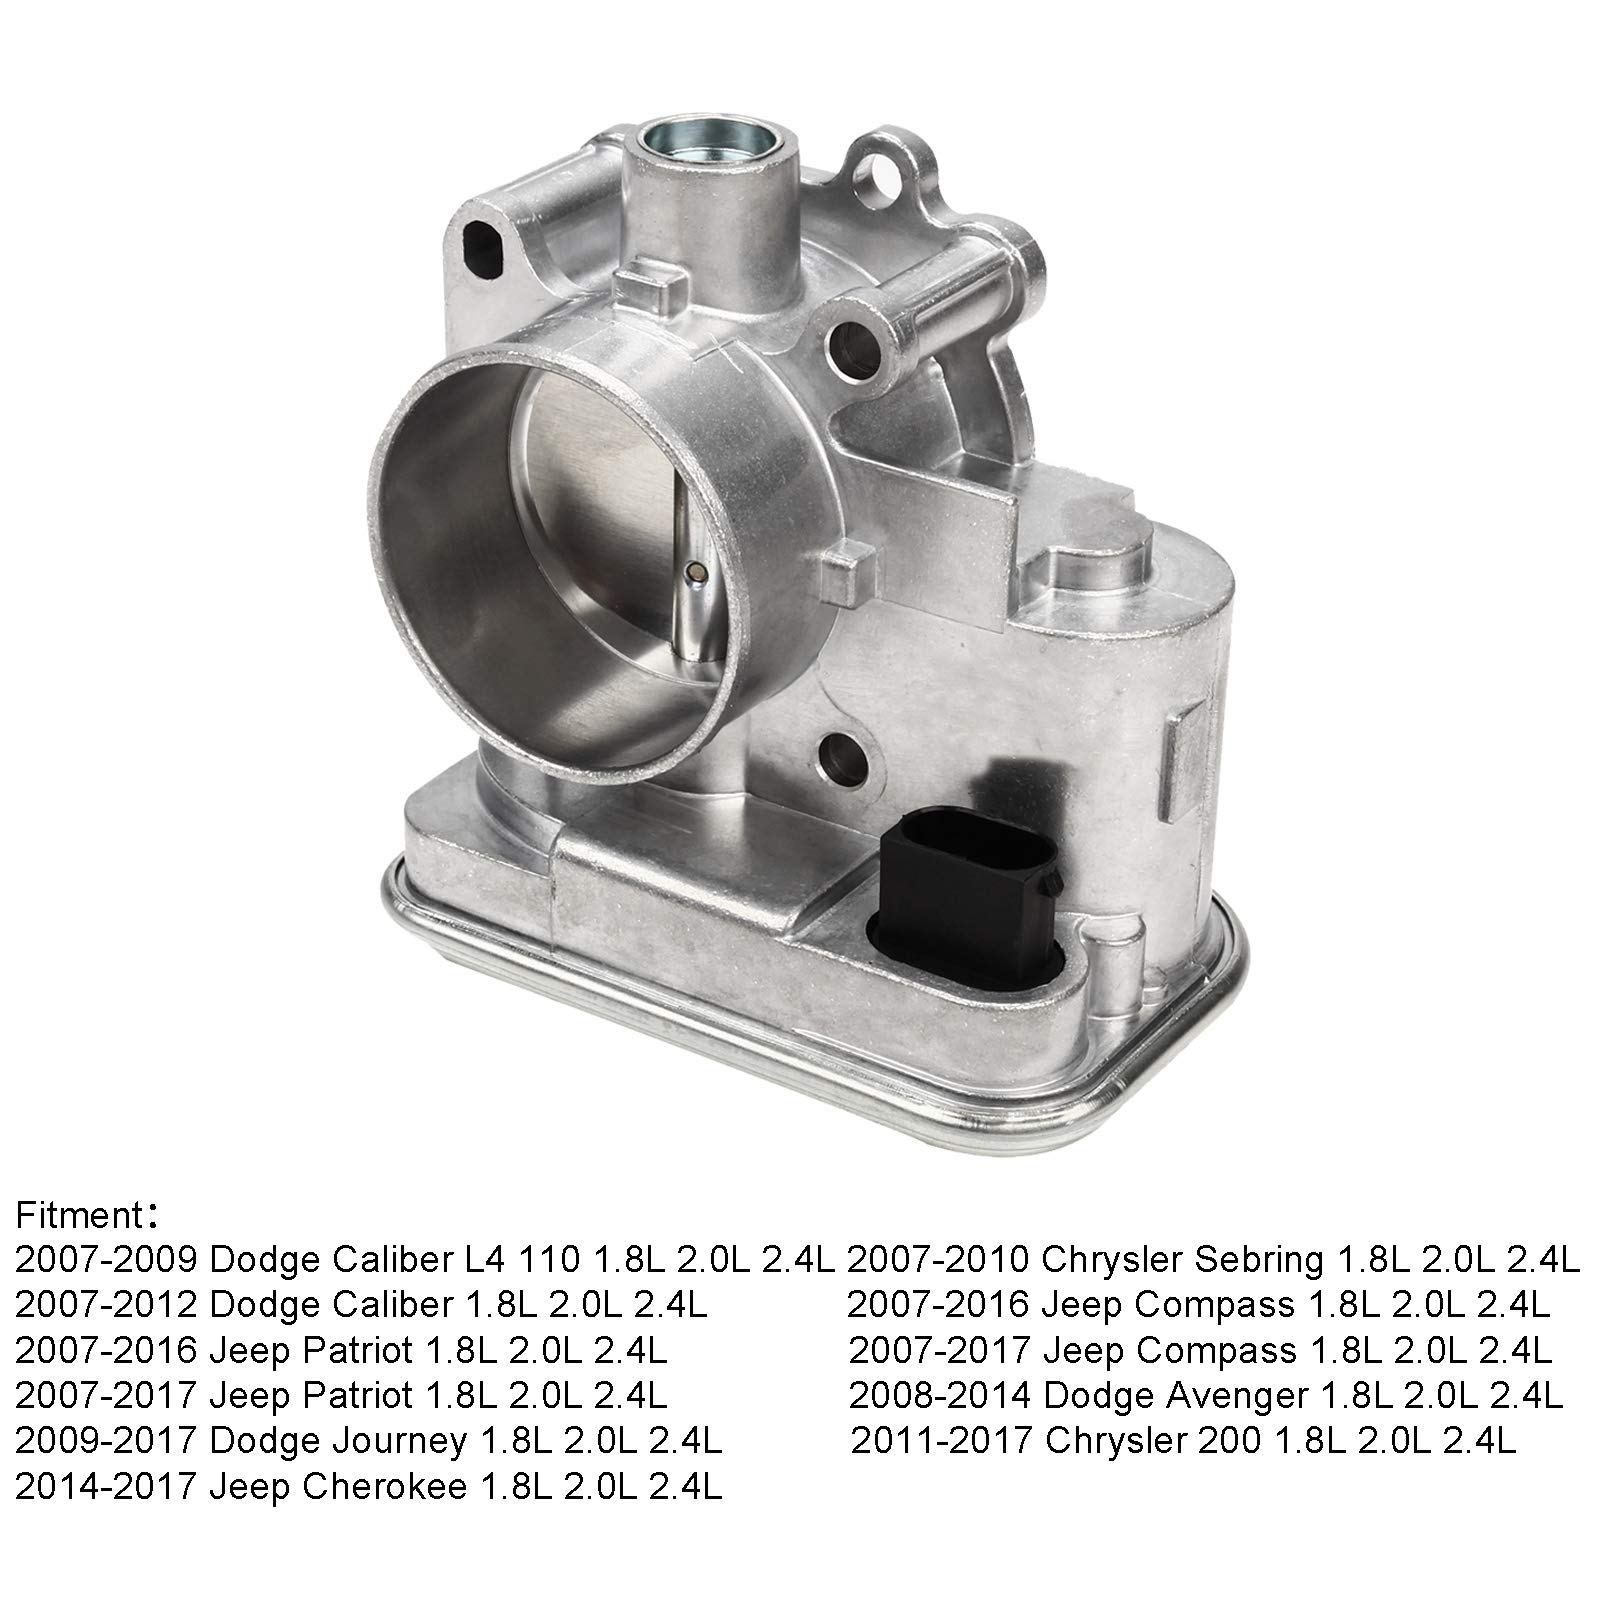 Superfastracing Complete Throttle Body With IAC Idle Air Control TPS Actuator Assembly For Chrysler 200/Sebring Dodge Journey/Avenger Jeep Cherokee/Patriot Replace 04891735AC 4891735AB 4891735 977-025 by SUPERFASTRACING